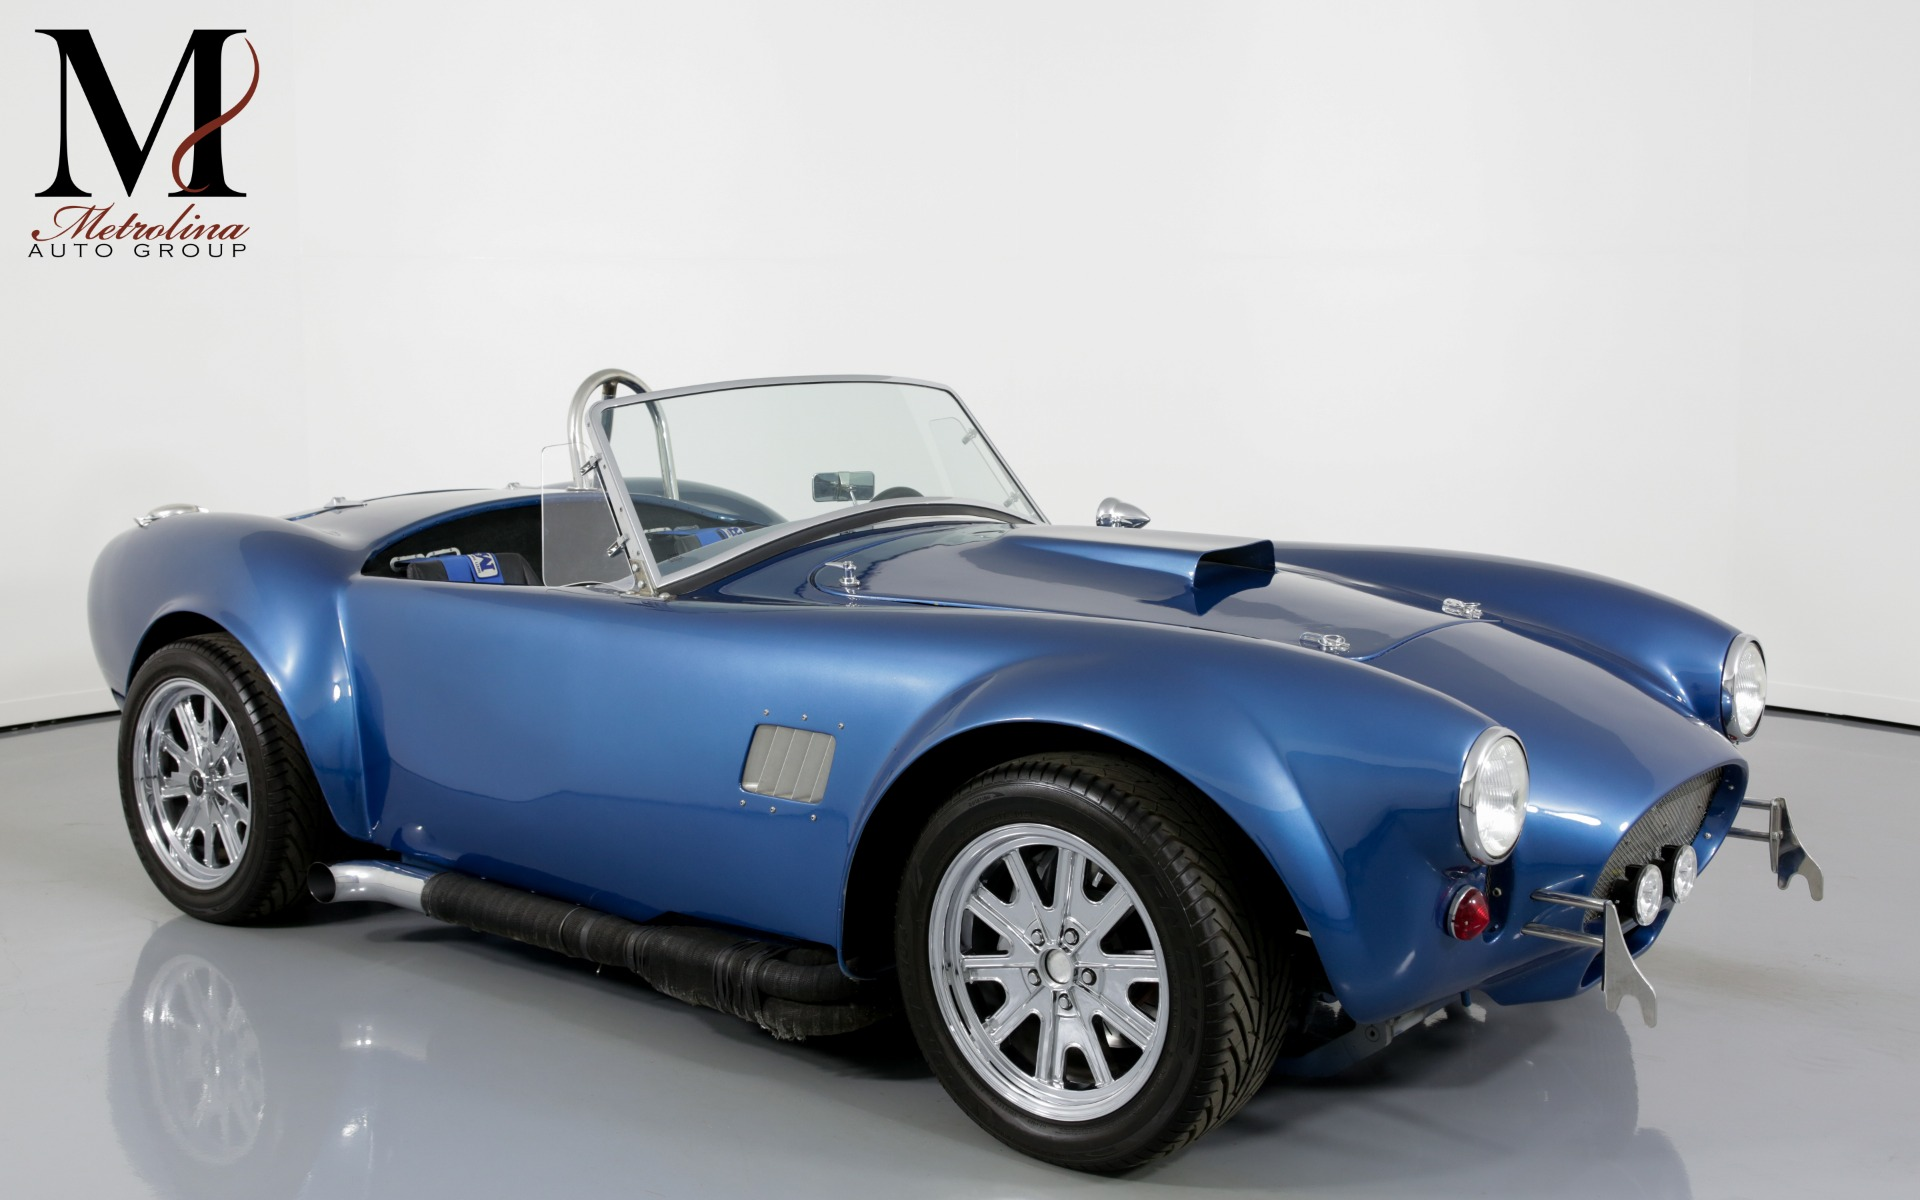 Used 1965 Shelby Cobra KIT CAR for sale $37,996 at Metrolina Auto Group in Charlotte NC 28217 - 1